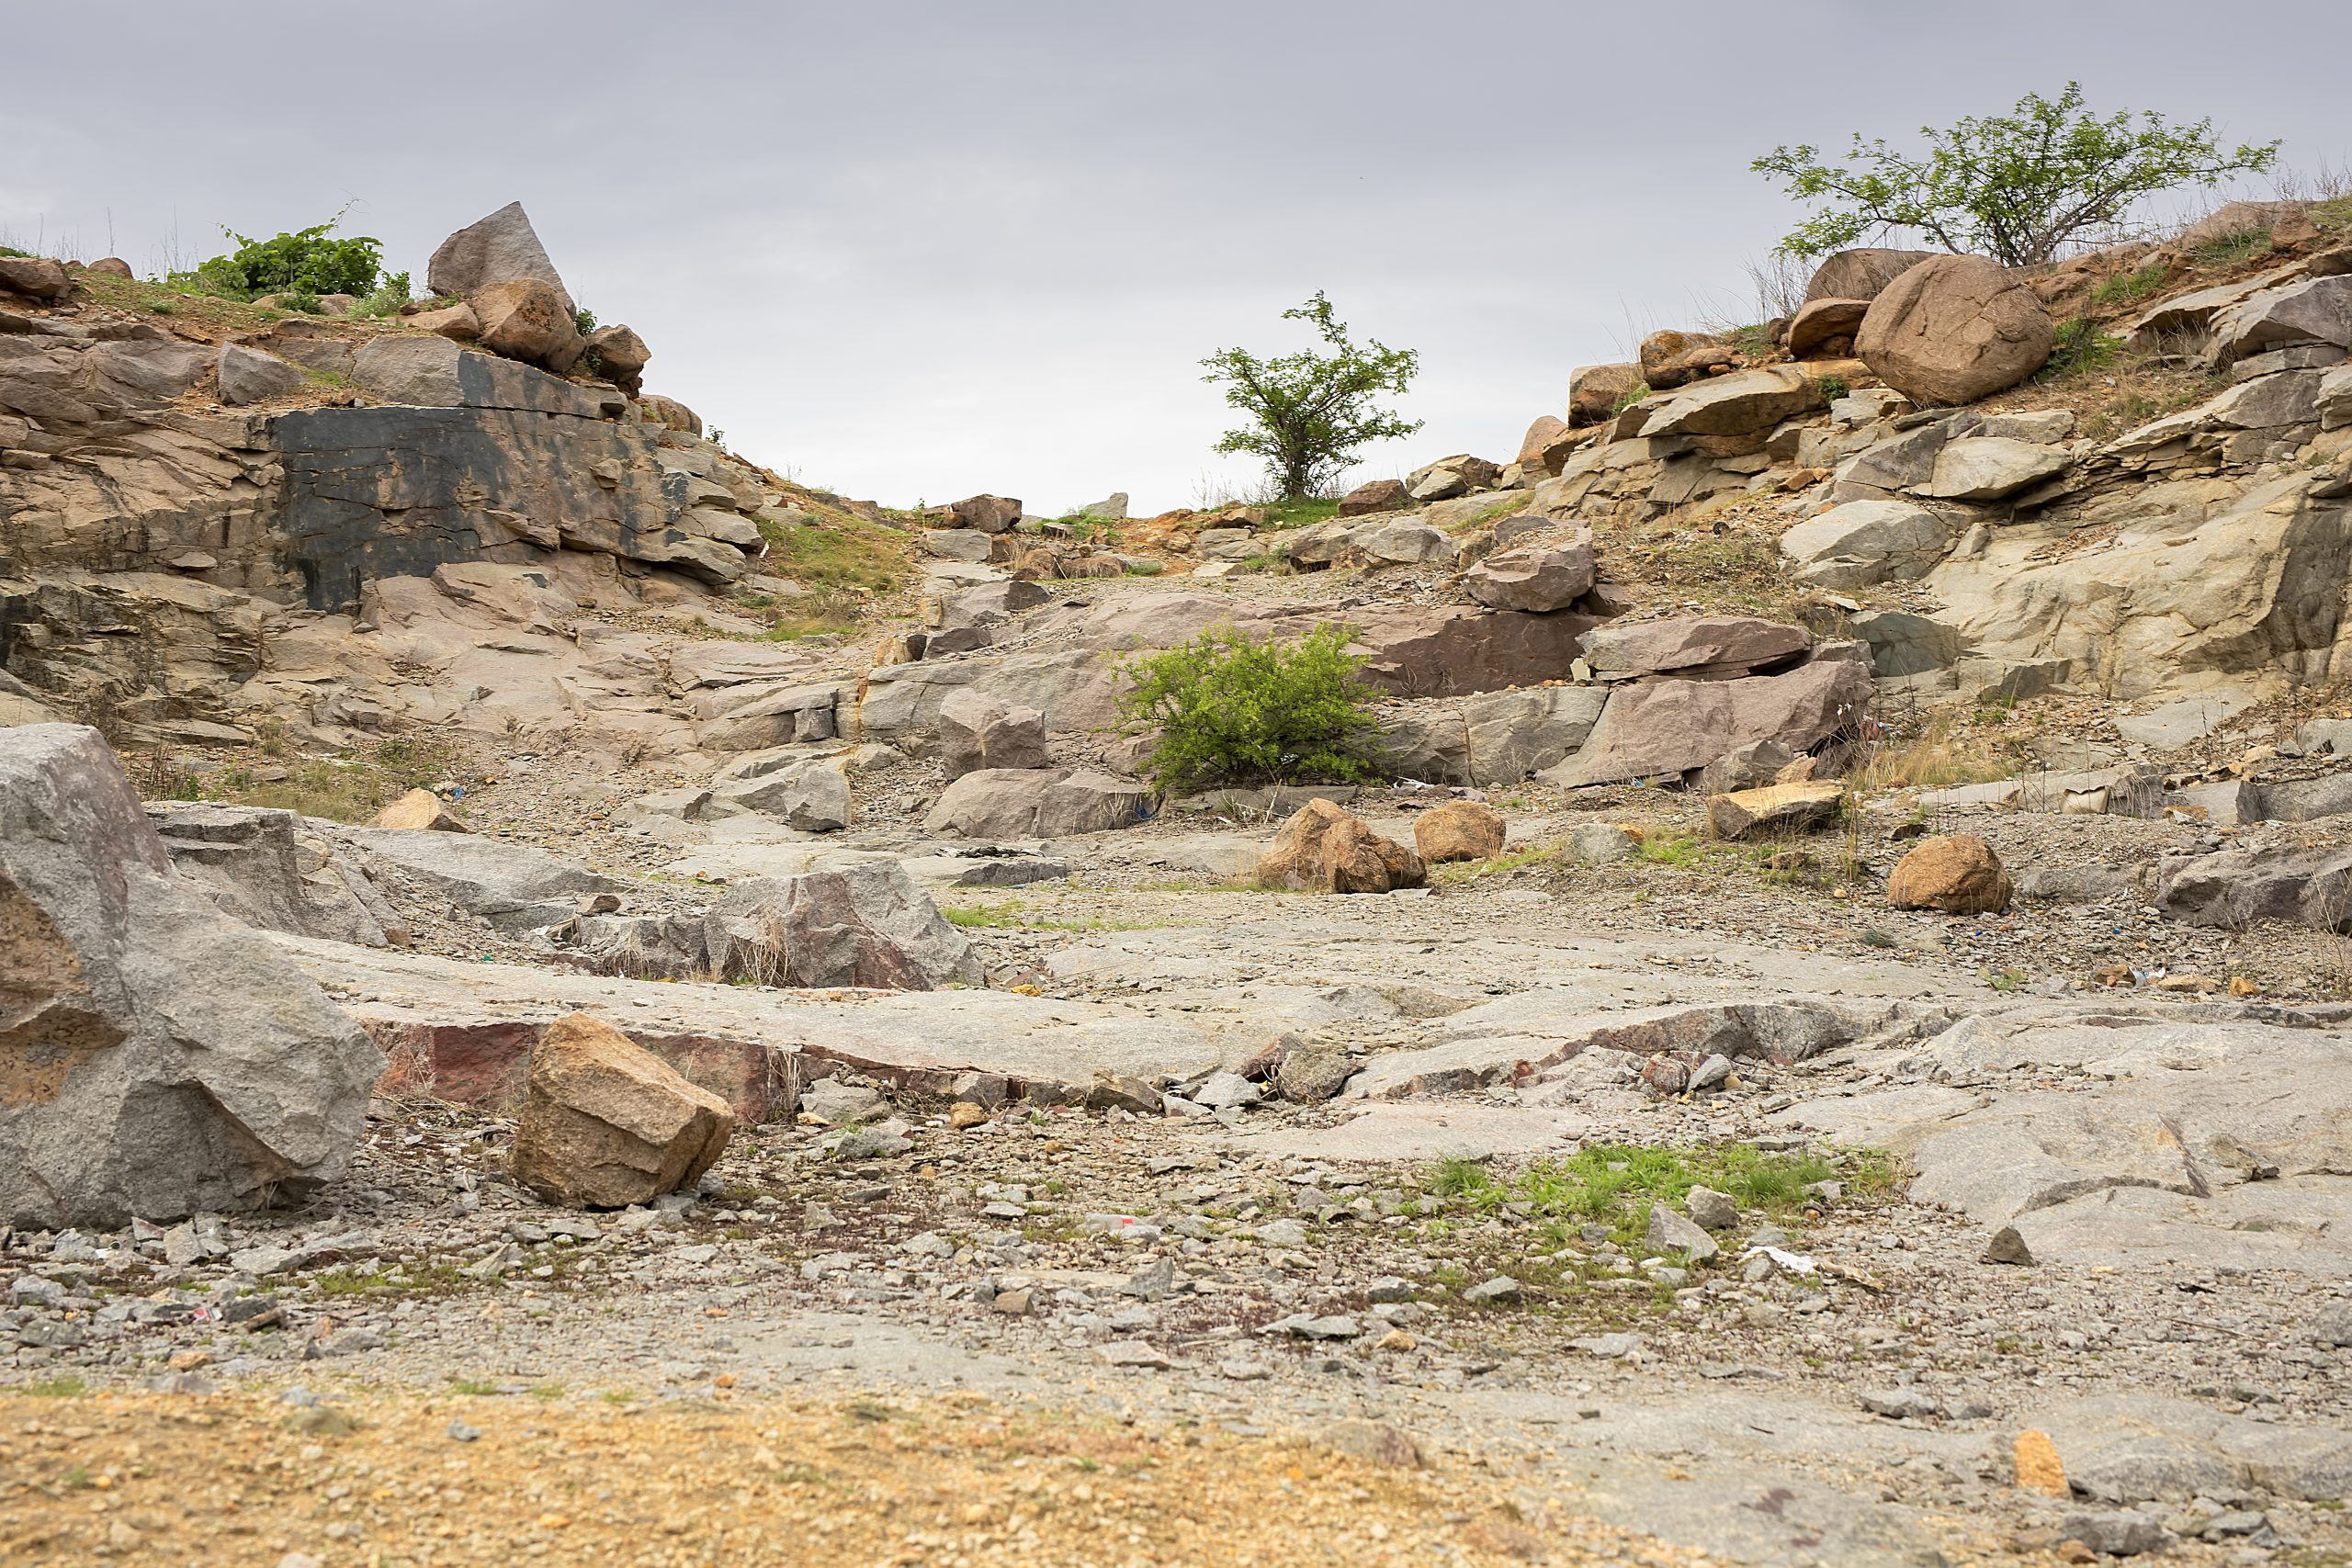 Rugged and dry terrain